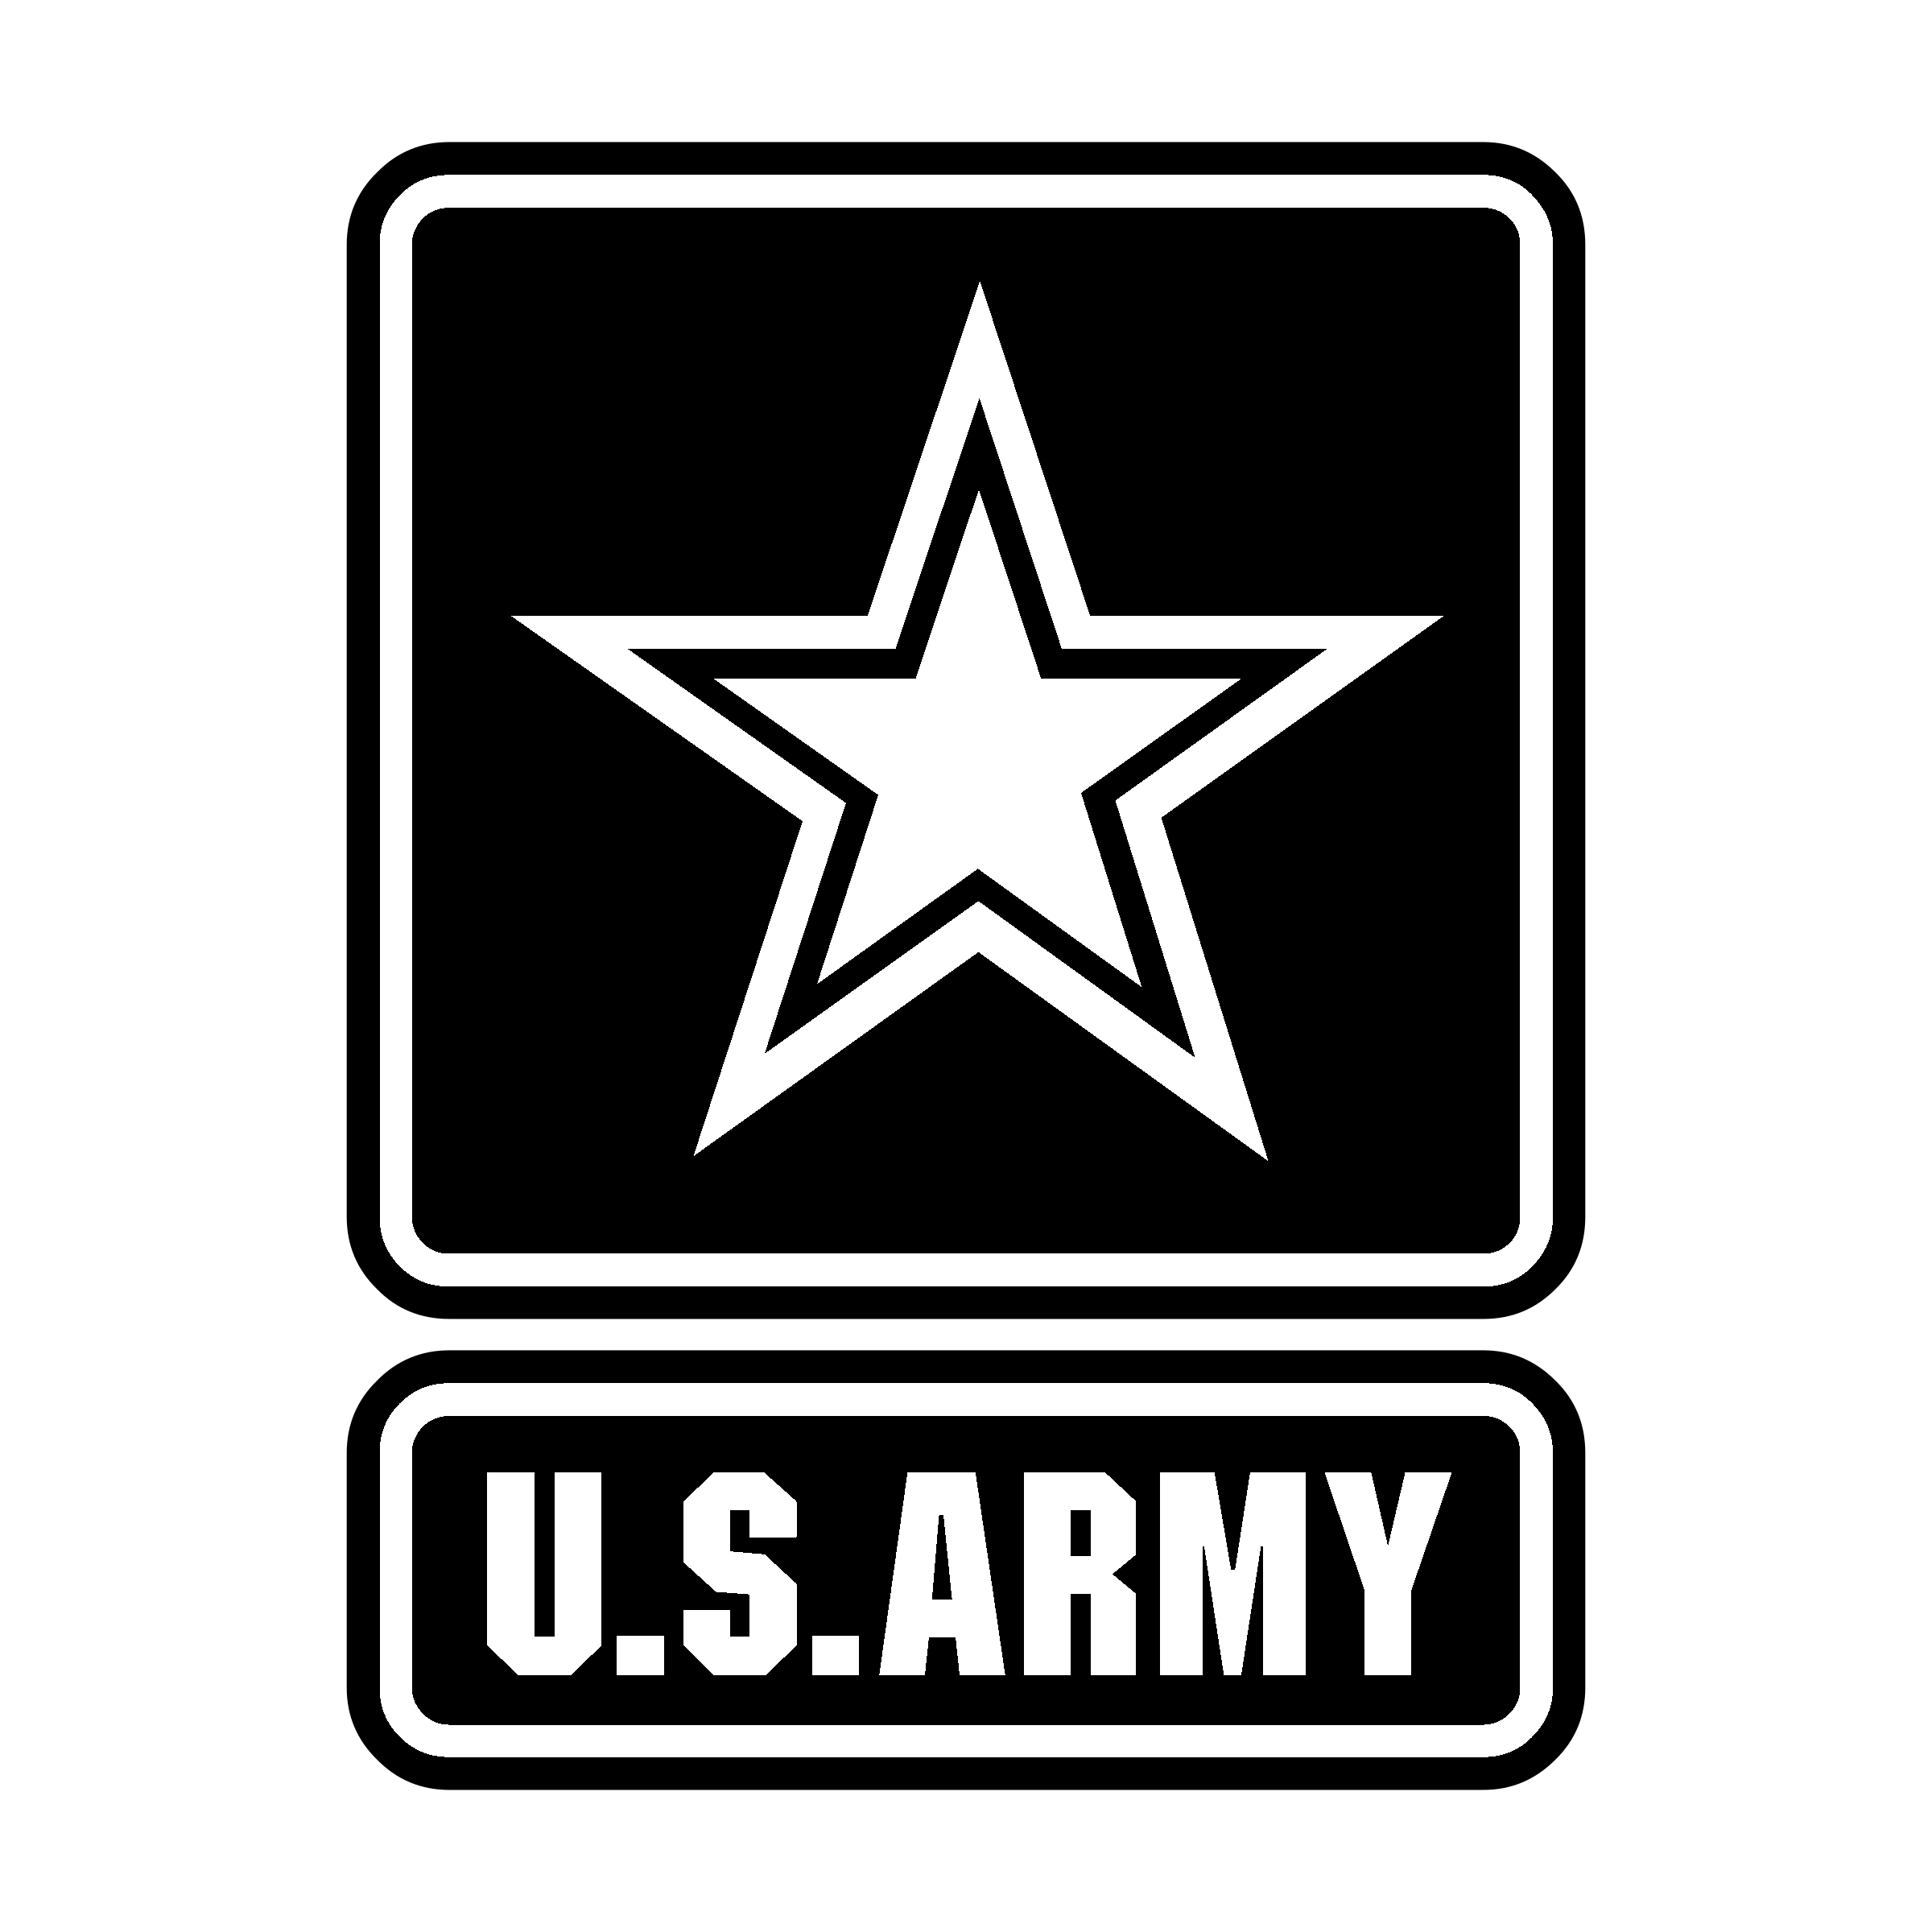 Army text clipart transparent library Logo United States Army Clip art - united states png download - 2400 ... transparent library